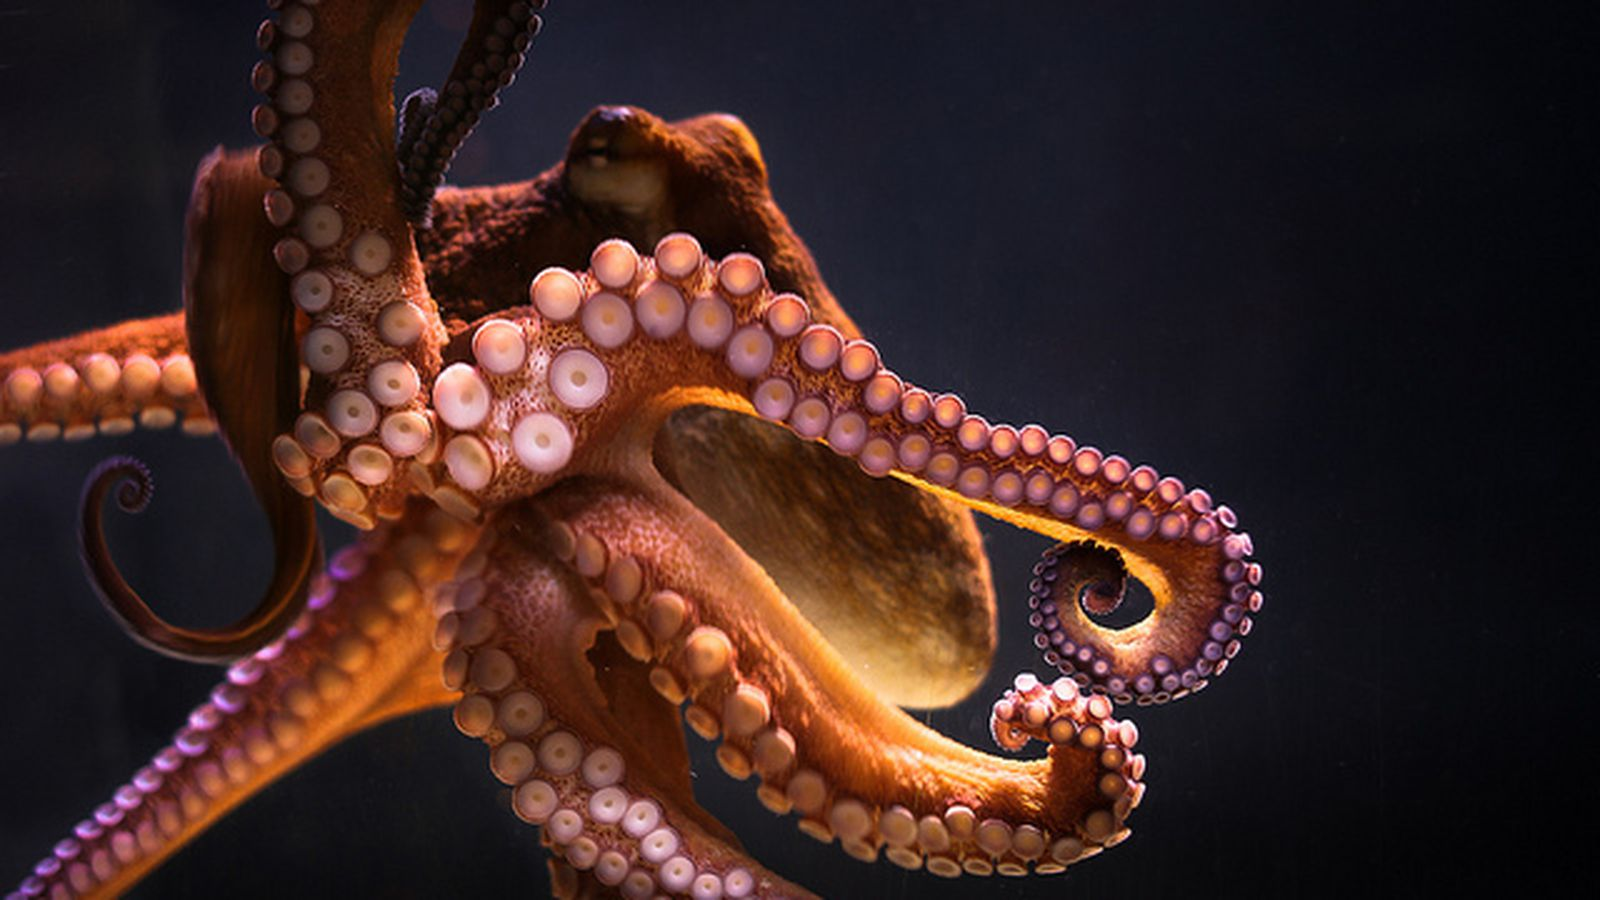 Together Energy Reviews >> Science explains why octopus arms don't stick together ...